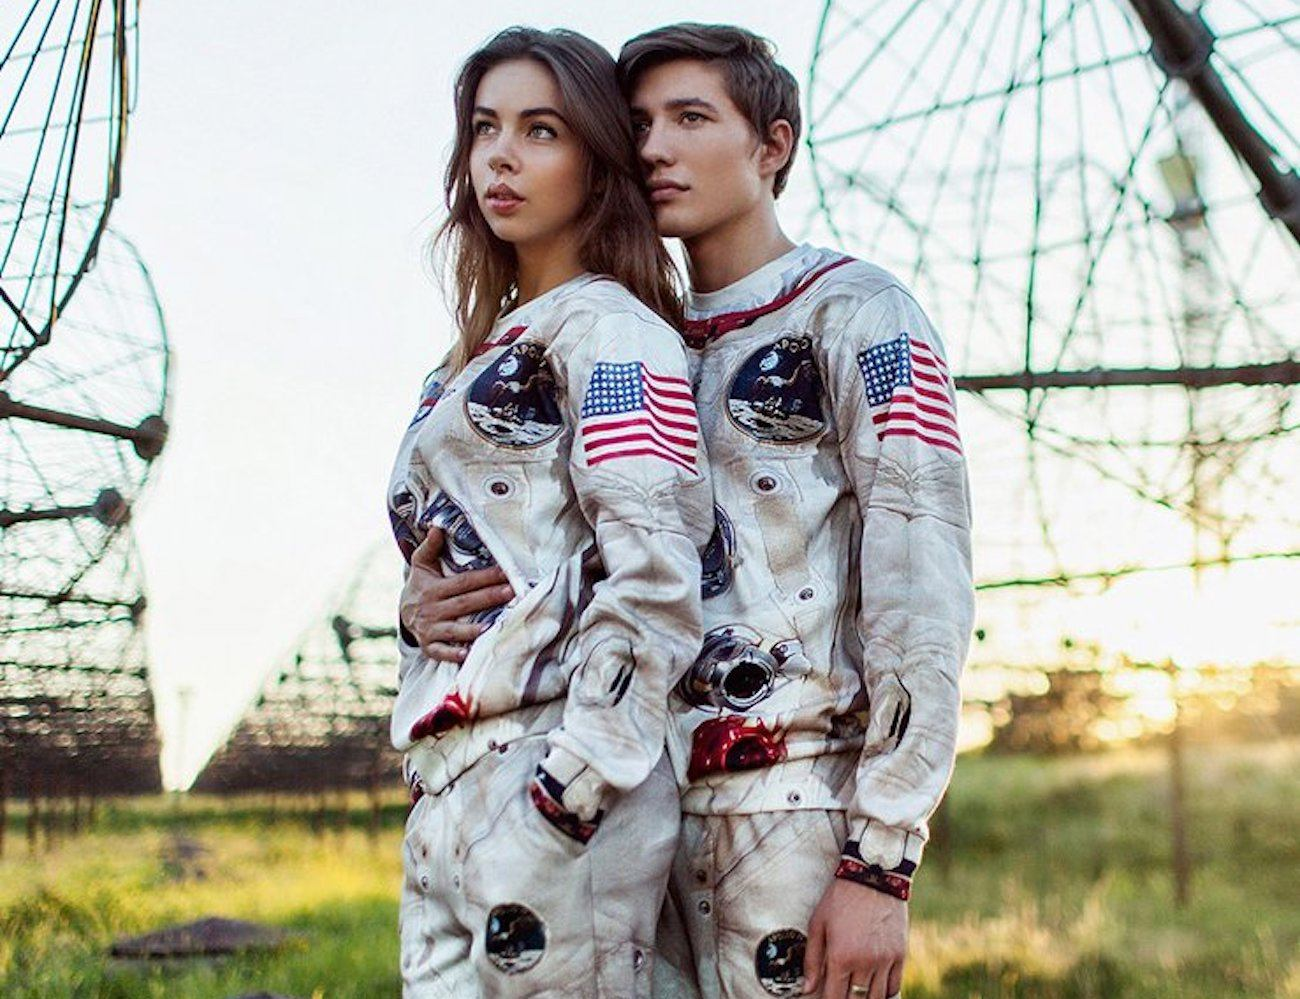 Apollo 11 Printed Sweatsuit by Fusion